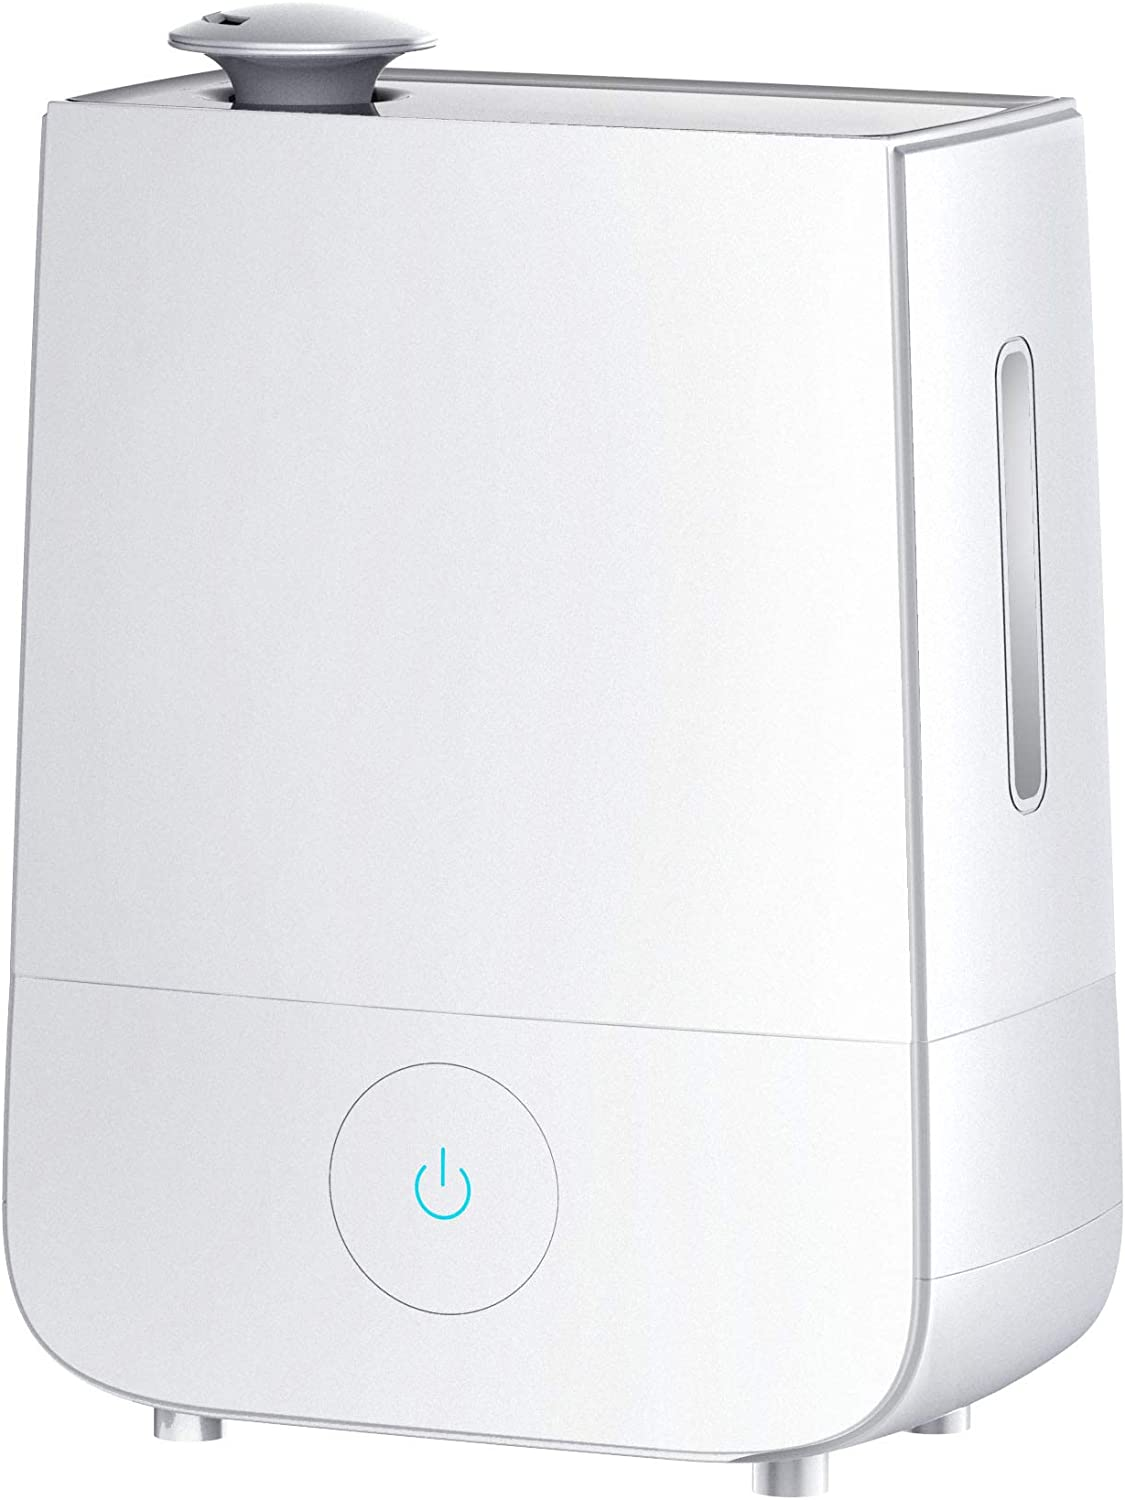 InnoGear Cool Mist Humidifier, 4L Touch Control Ultrasonic Humidifiers 360 Rotatable Nozzle and 3 Mist Level Low Medium High 13-40 Hrs Waterless Auto Shut-off Whisper Quiet for Home Baby Nursery